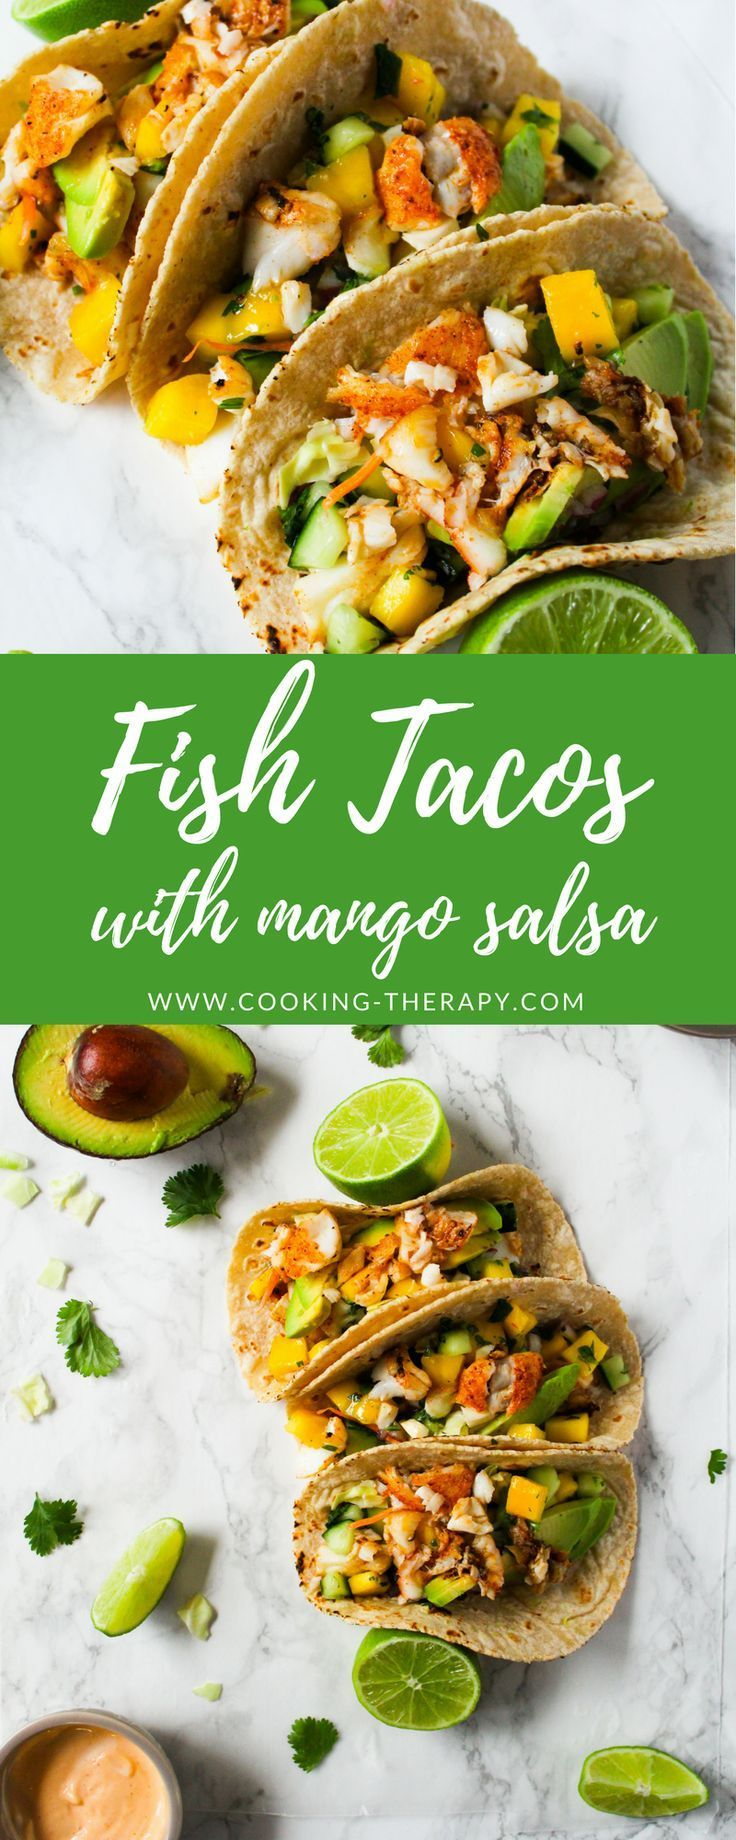 Fish Tacos with Cod and Mango Salsa